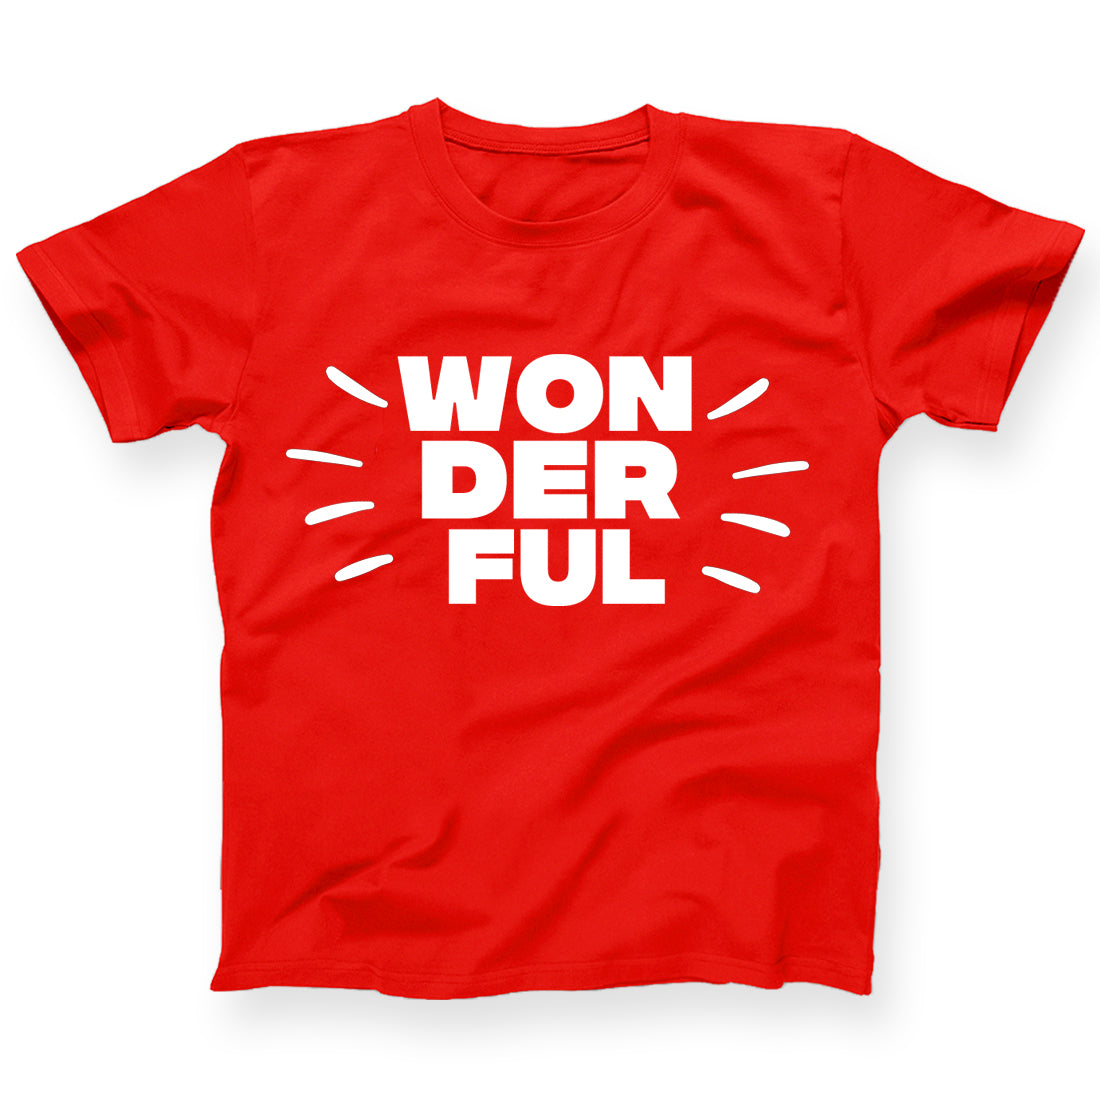 Wonderful Kids T-Shirt-Children's Day T-Shirt